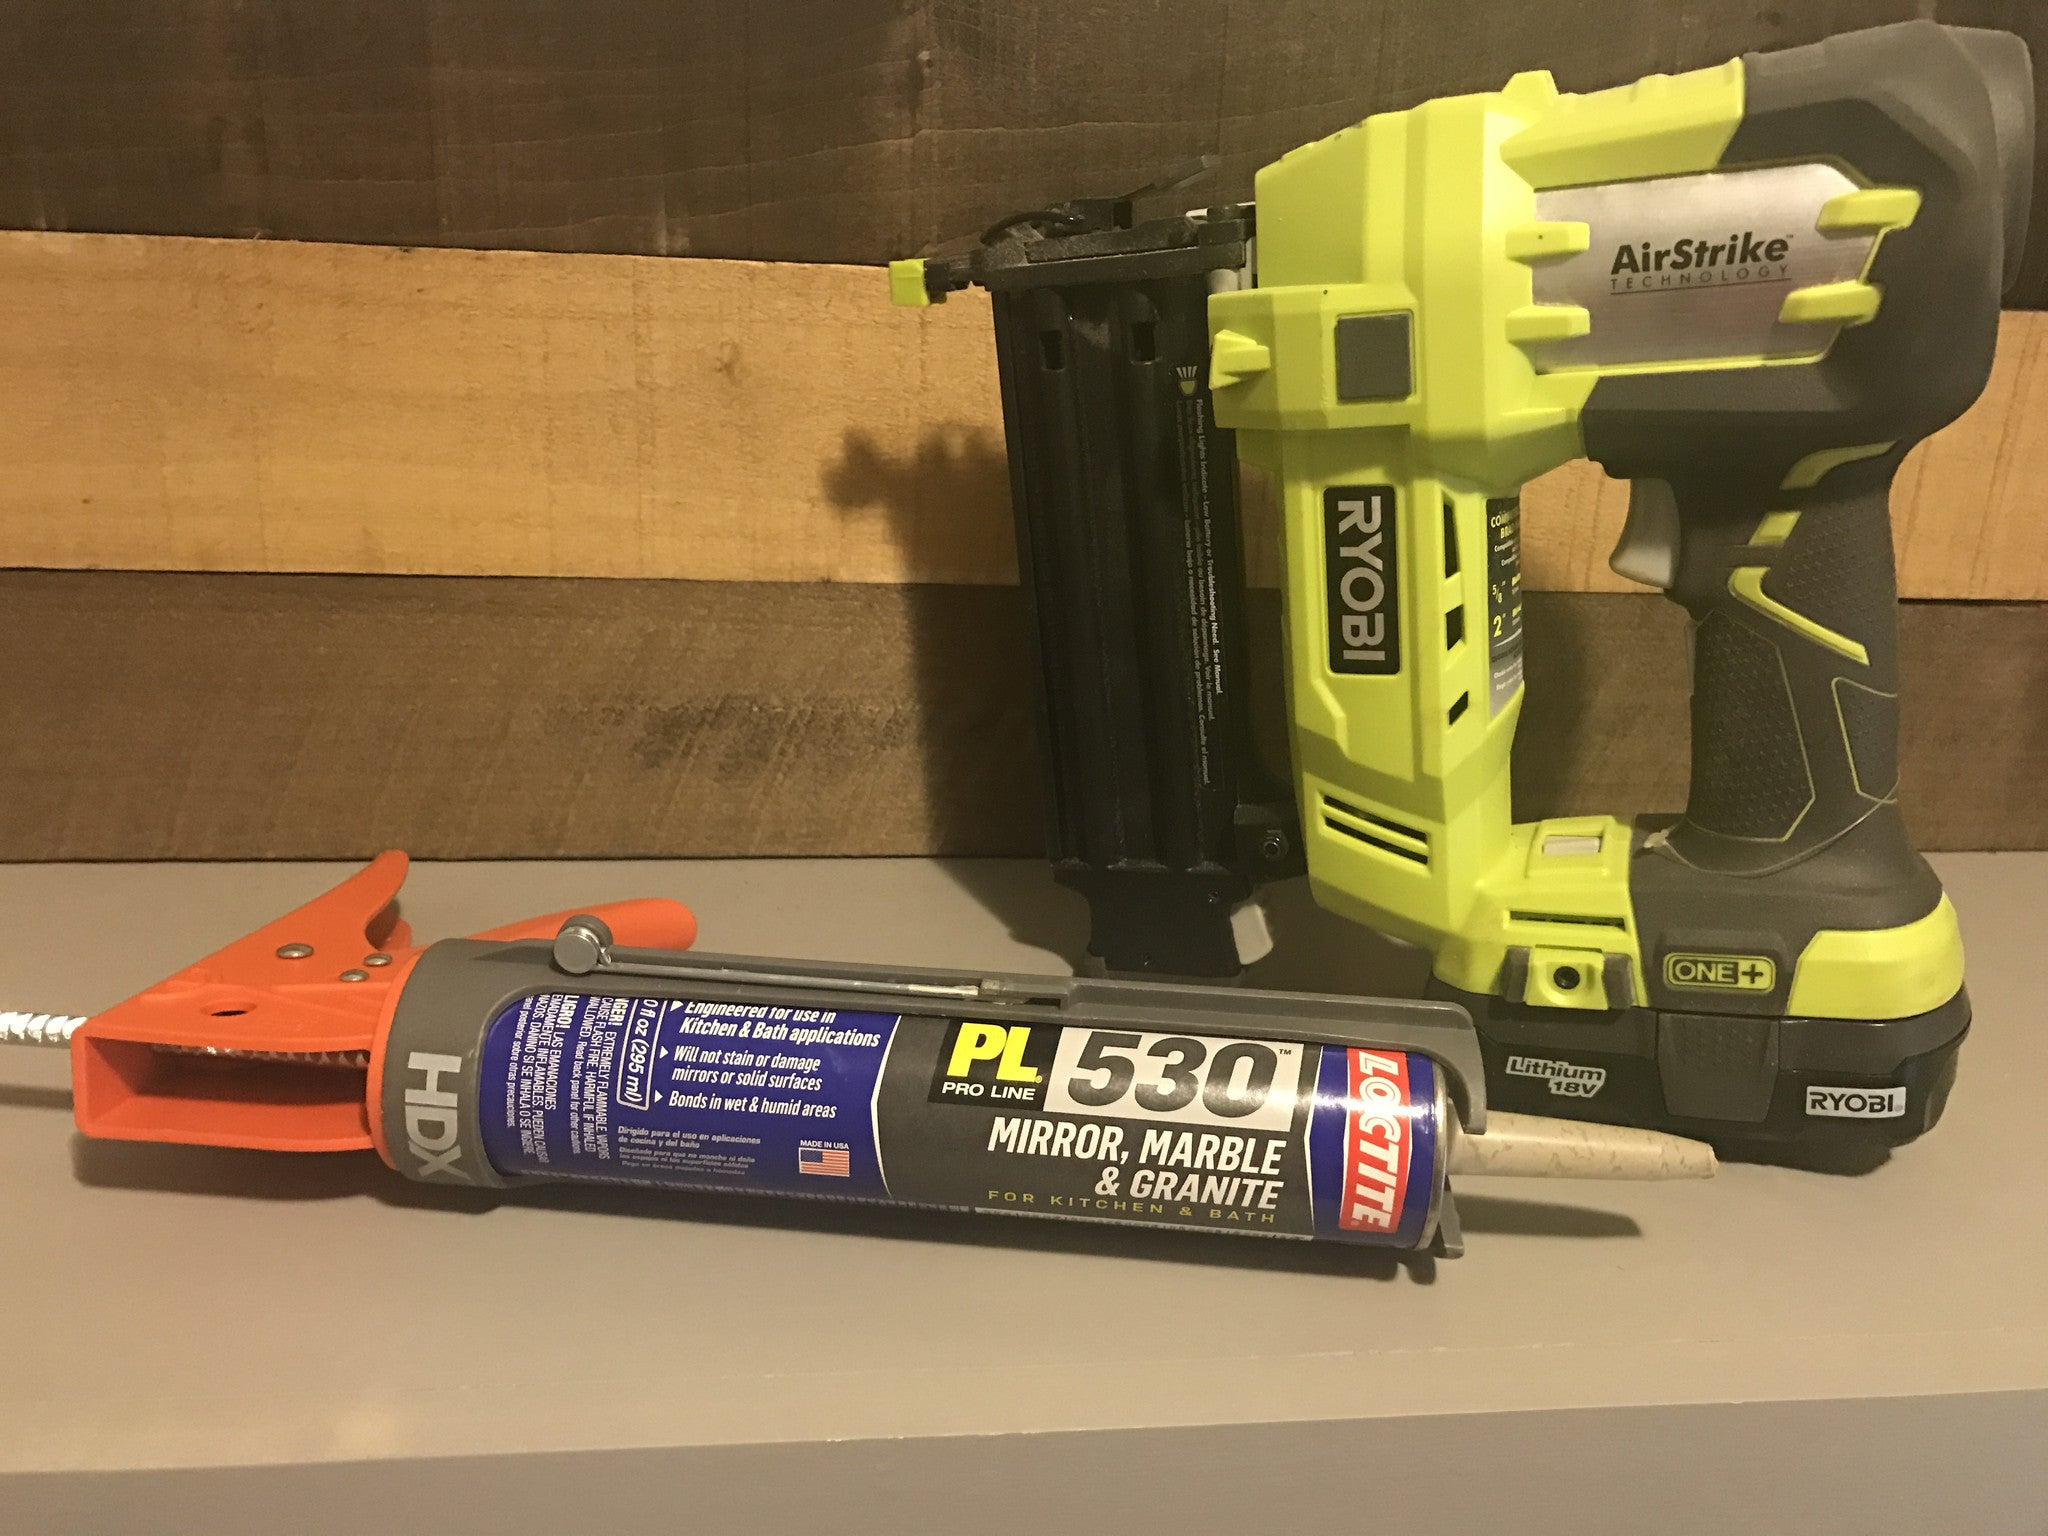 Ryobi Brad Nailer posed in front of weaver Lumber wall boards